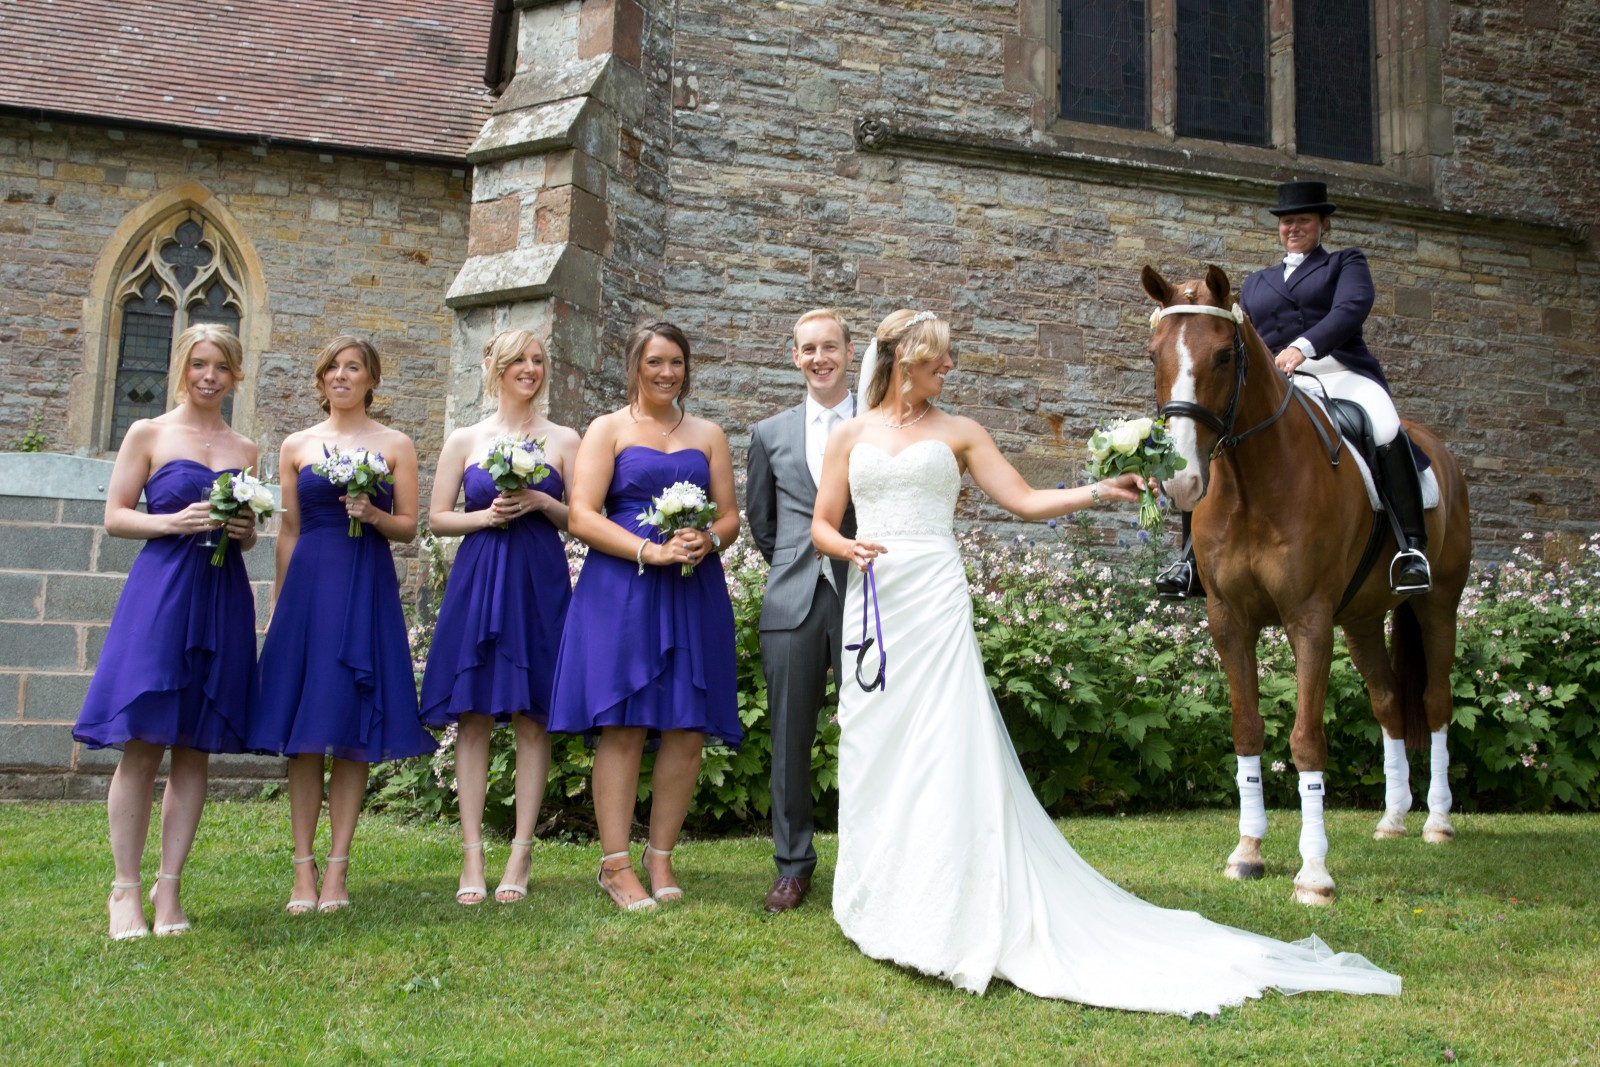 You'll want to know why there is a horse at this wedding!